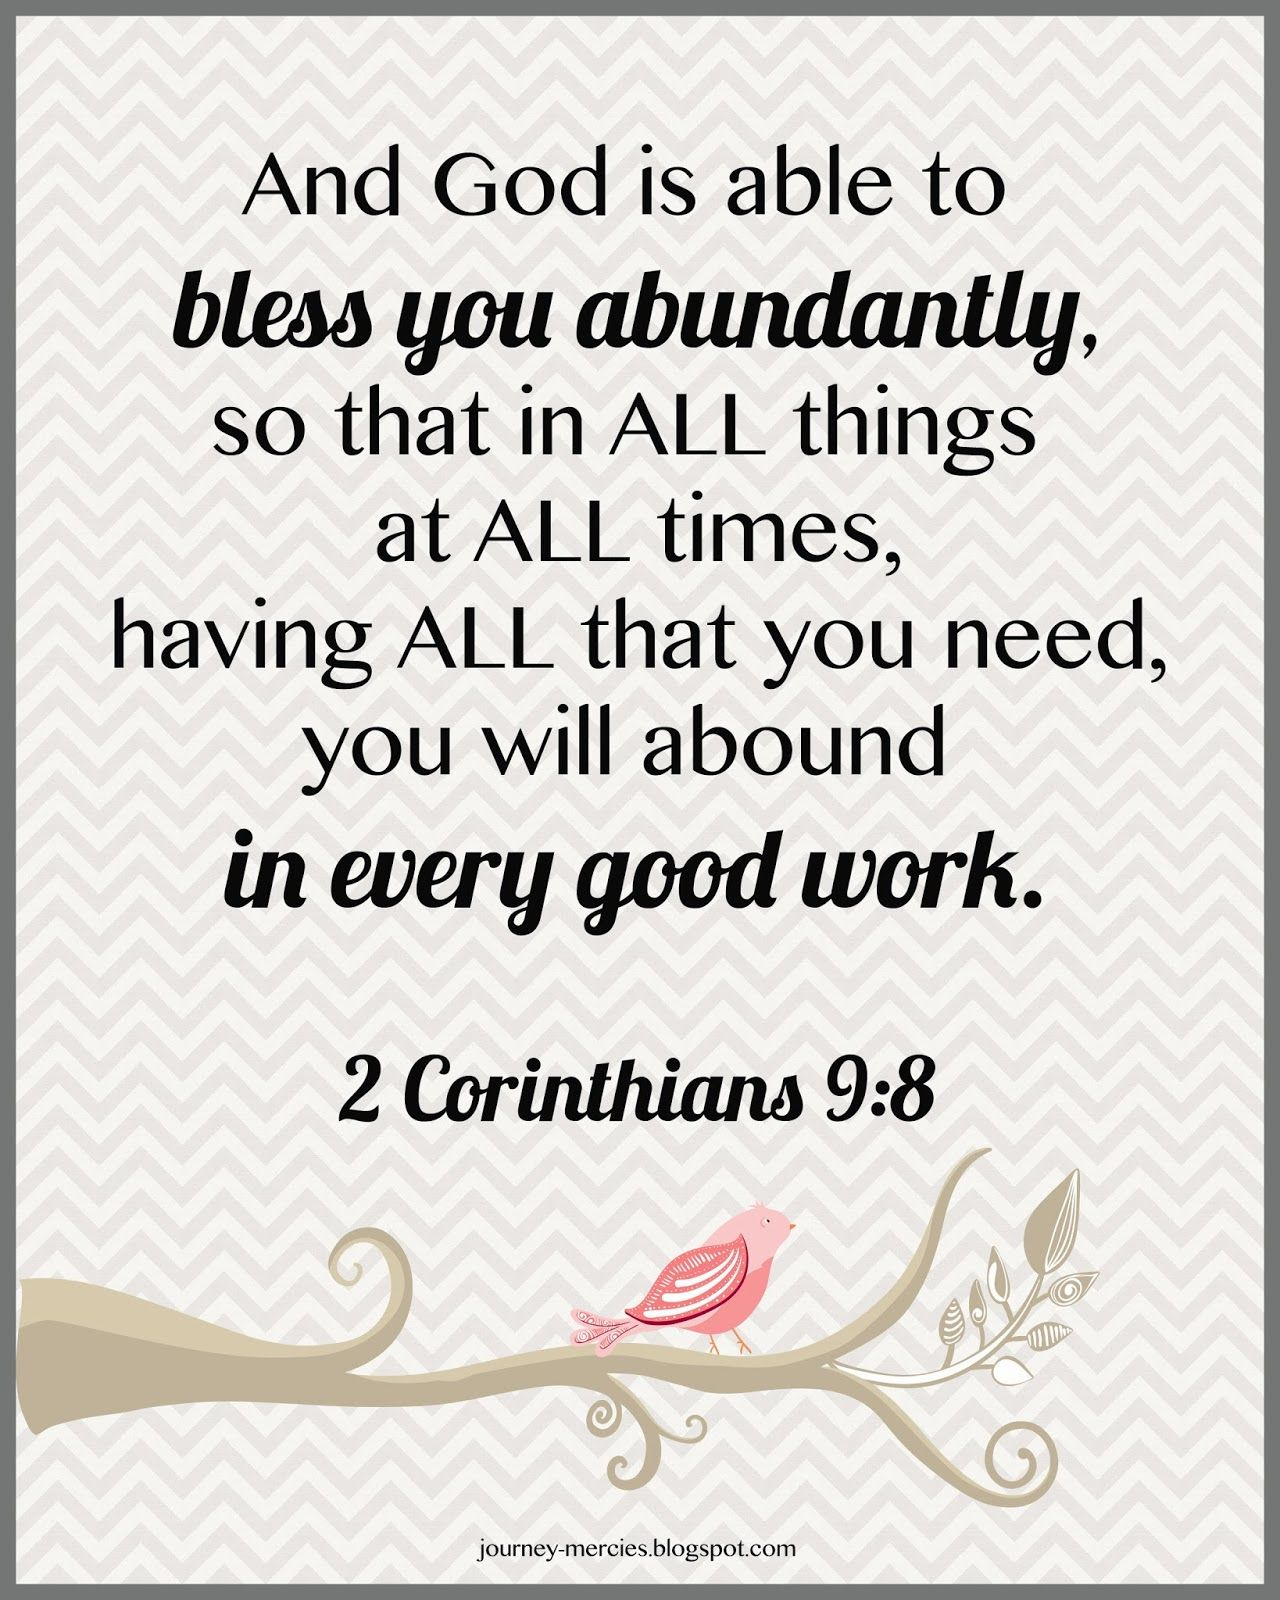 Pin by Whitney @ Journey Mercies on Free Printables & Fonts | New quotes,  Gods strength, Bible quotes